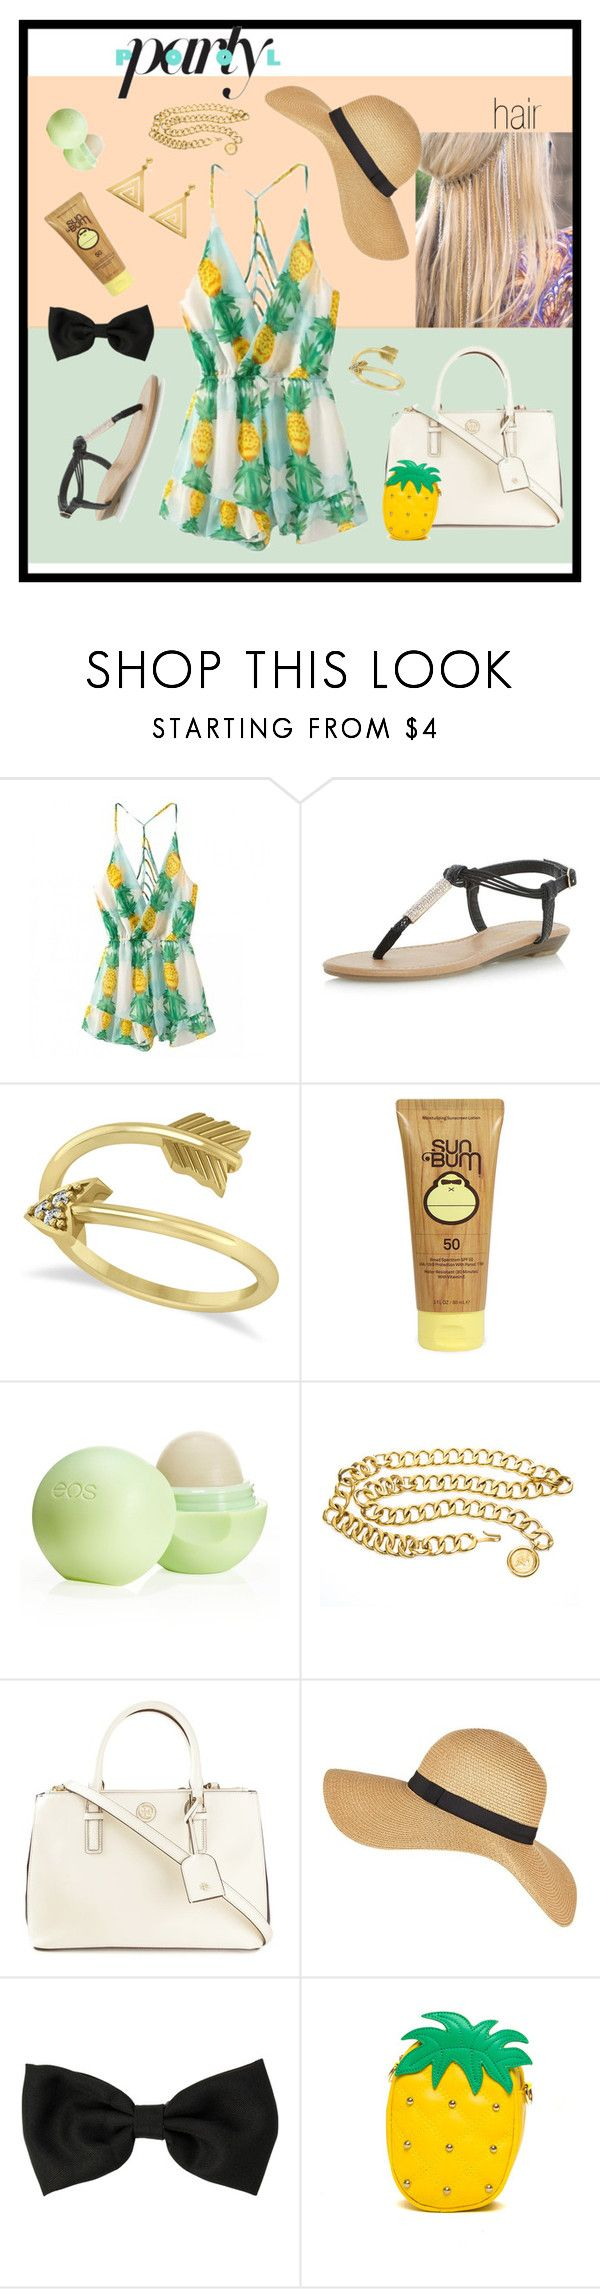 """Pineapple Themed Pool Party"" by kokiorose ❤ liked on Polyvore featuring Dorothy Perkins, Allurez, Sun Bum, Eos, Chanel, Tory Burch, ChloBo, women's clothing, women and female"